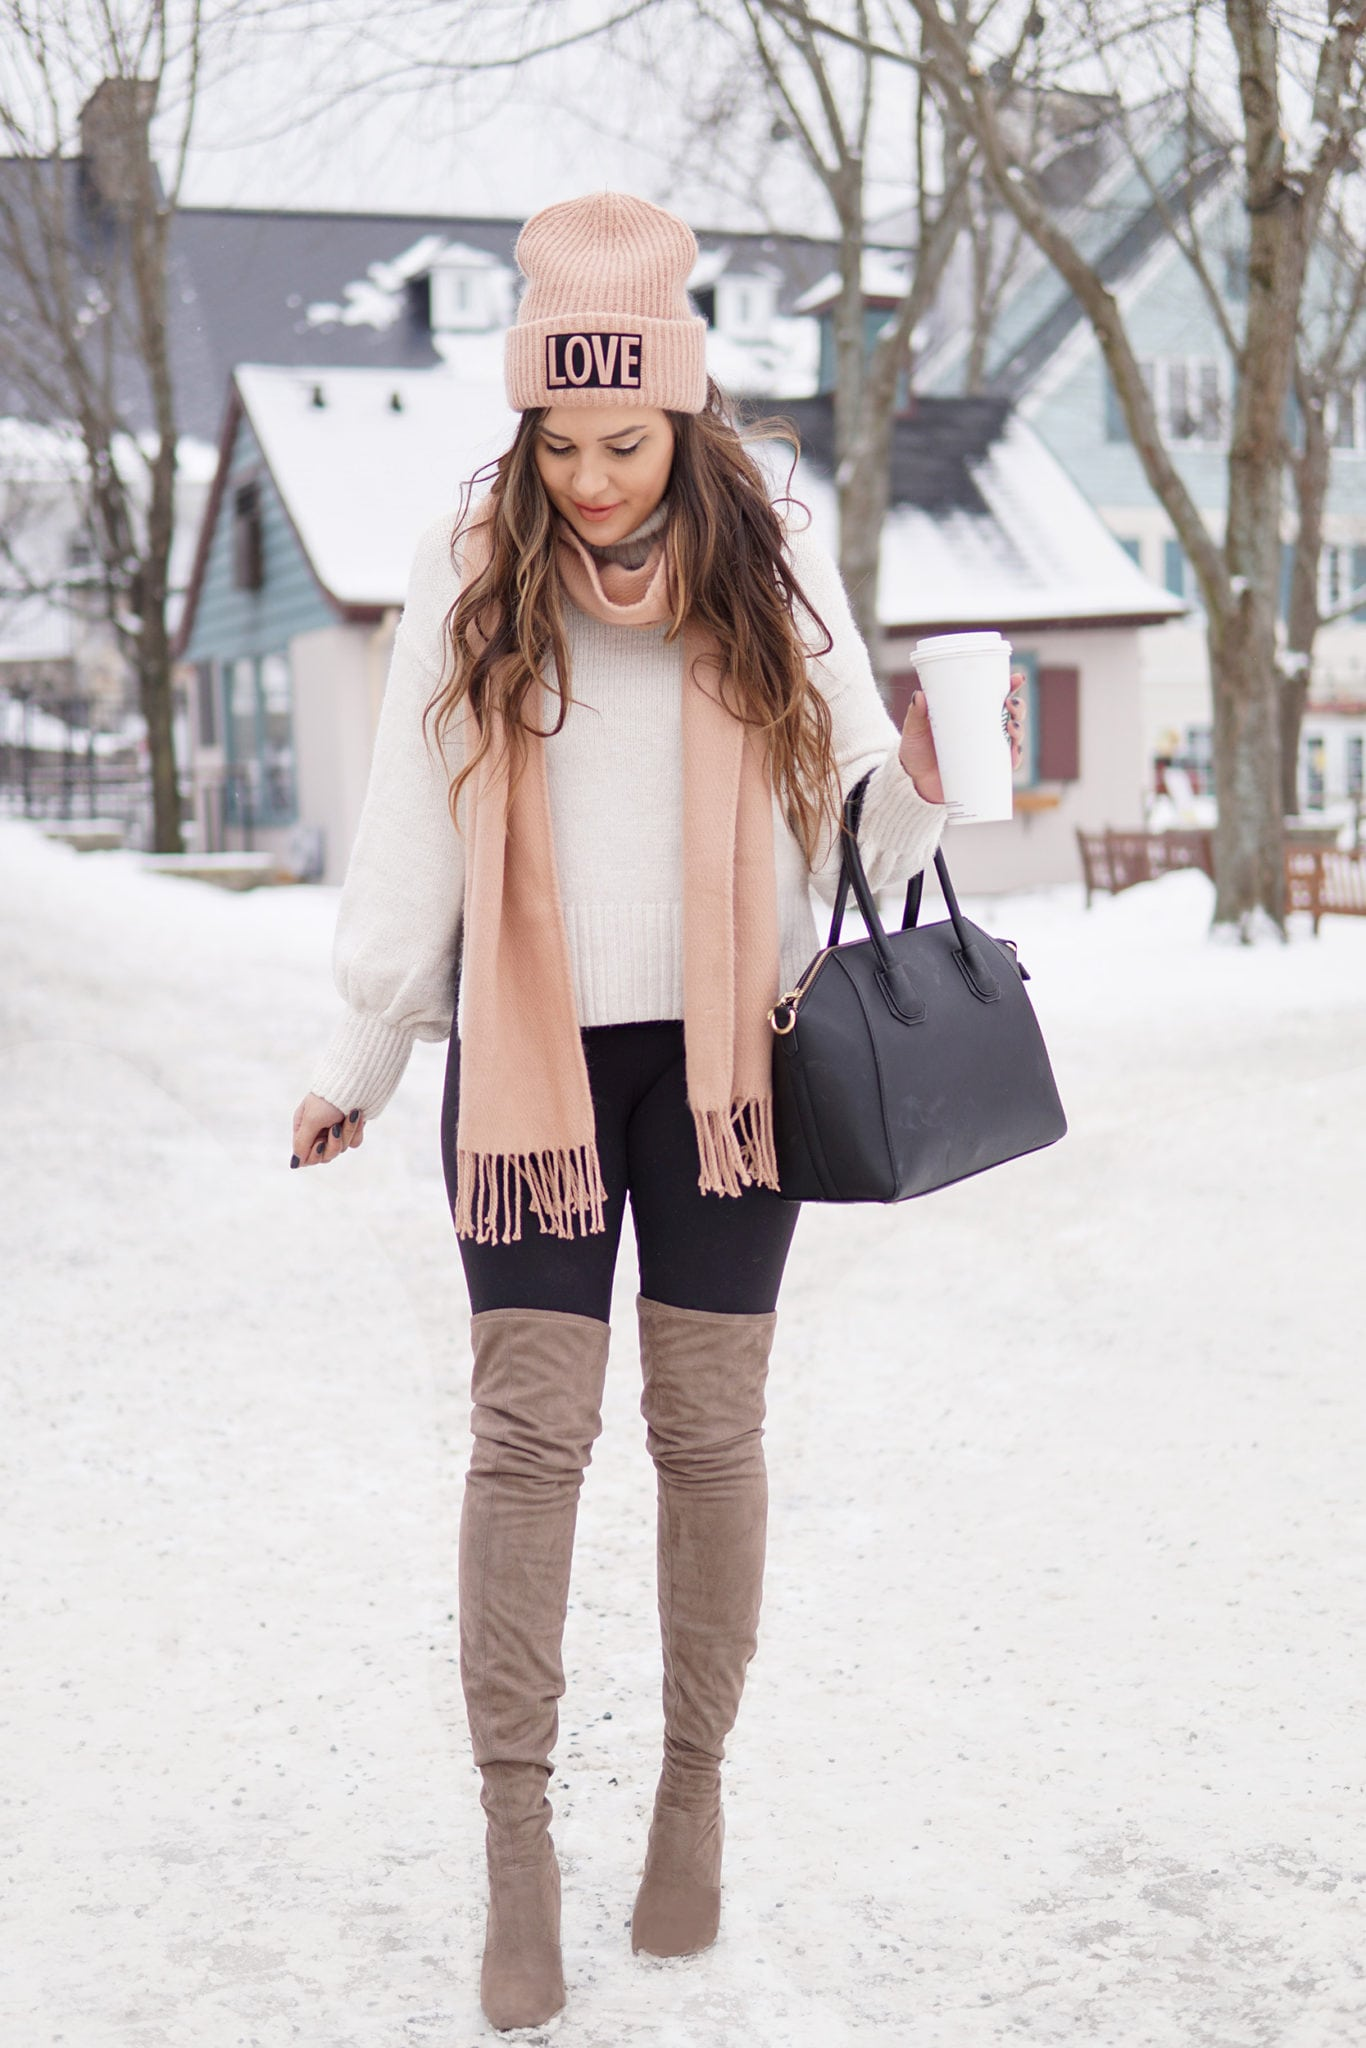 winter fashion outfit | staying warm | beauty blogger Mash elle | pink scarf | pink hat | otk boots, snow